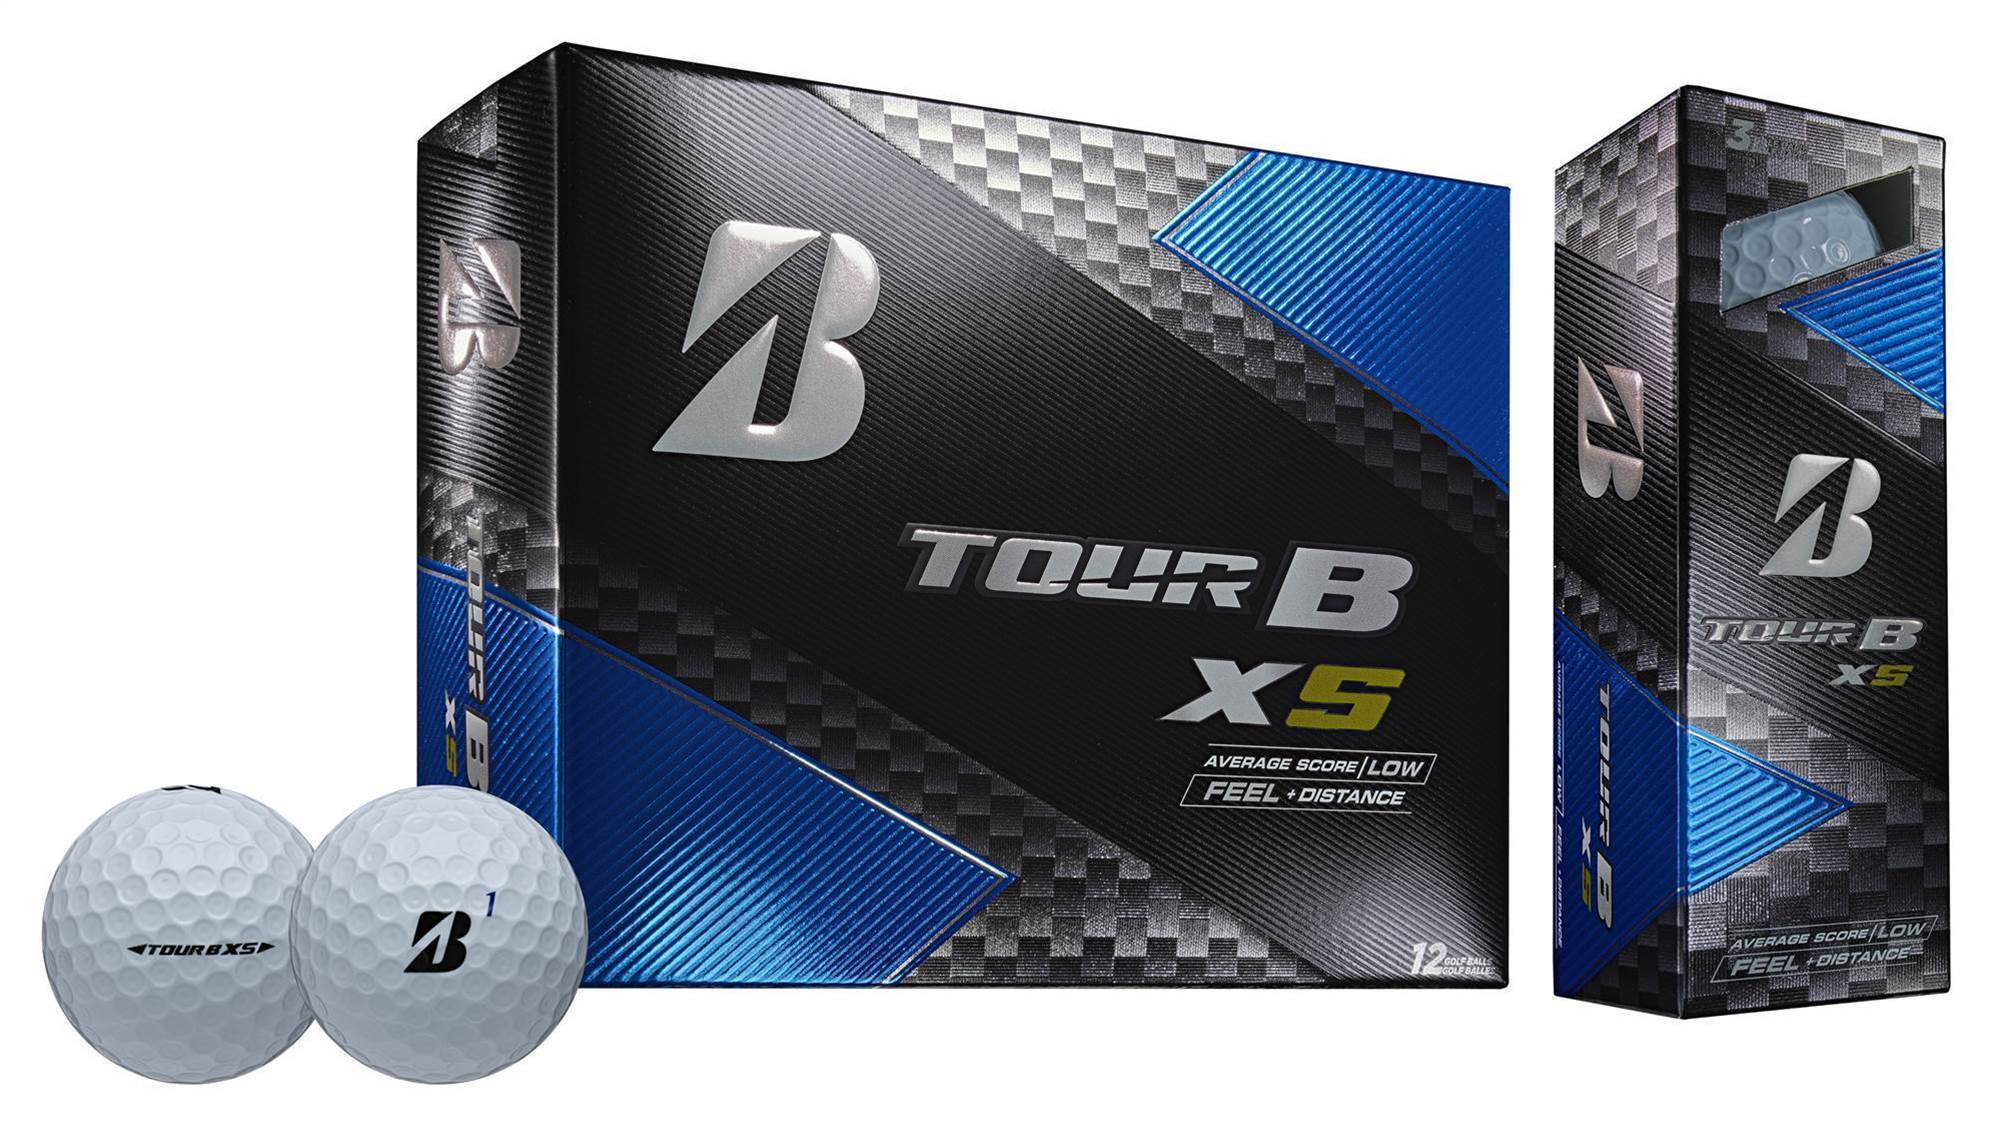 Innovation drives new Bridgestone Tour B